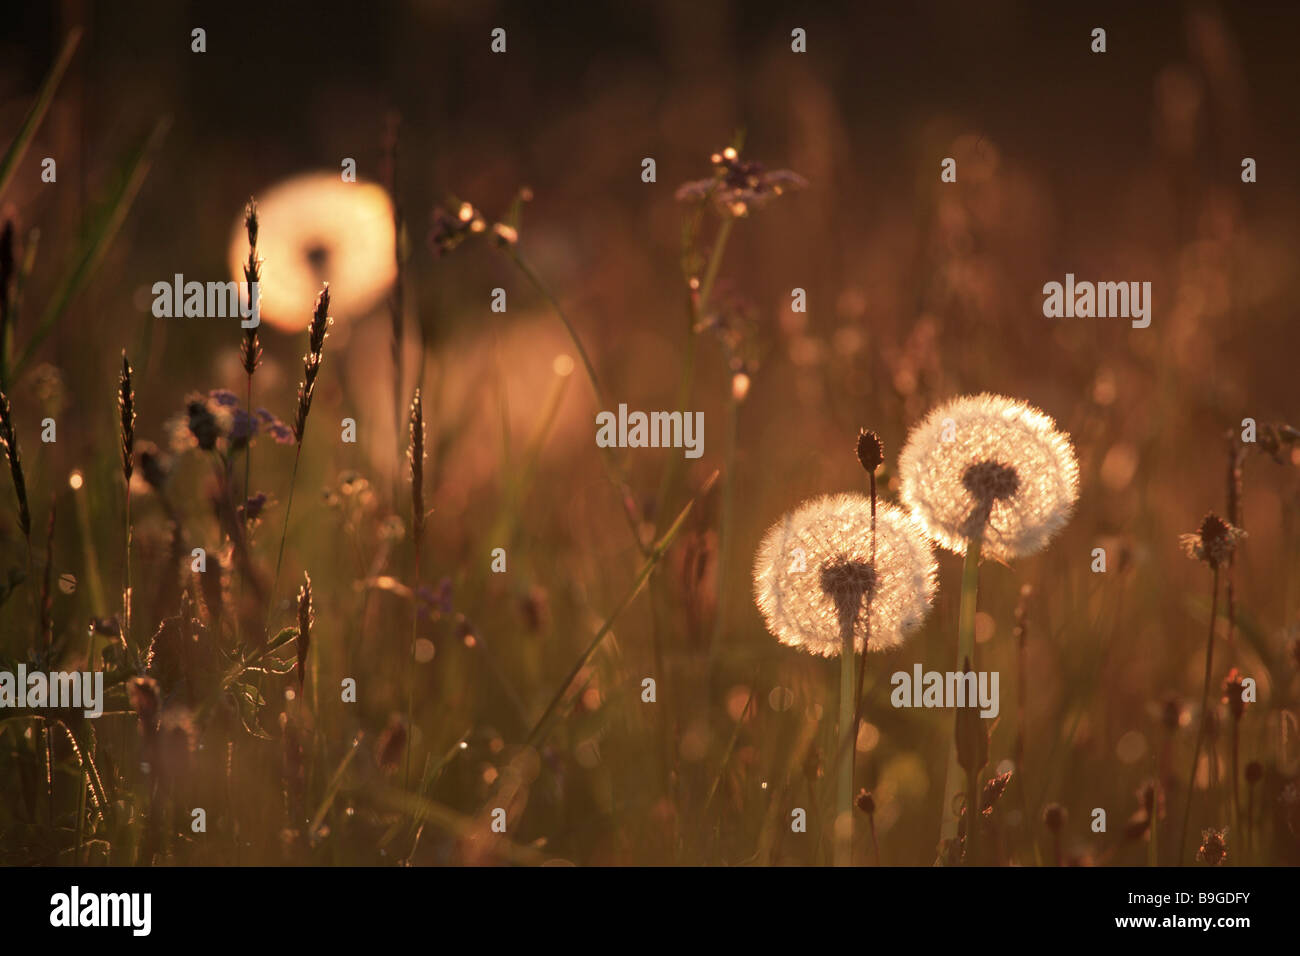 Meadow dandelion breath-flowers withers back light - Stock Image